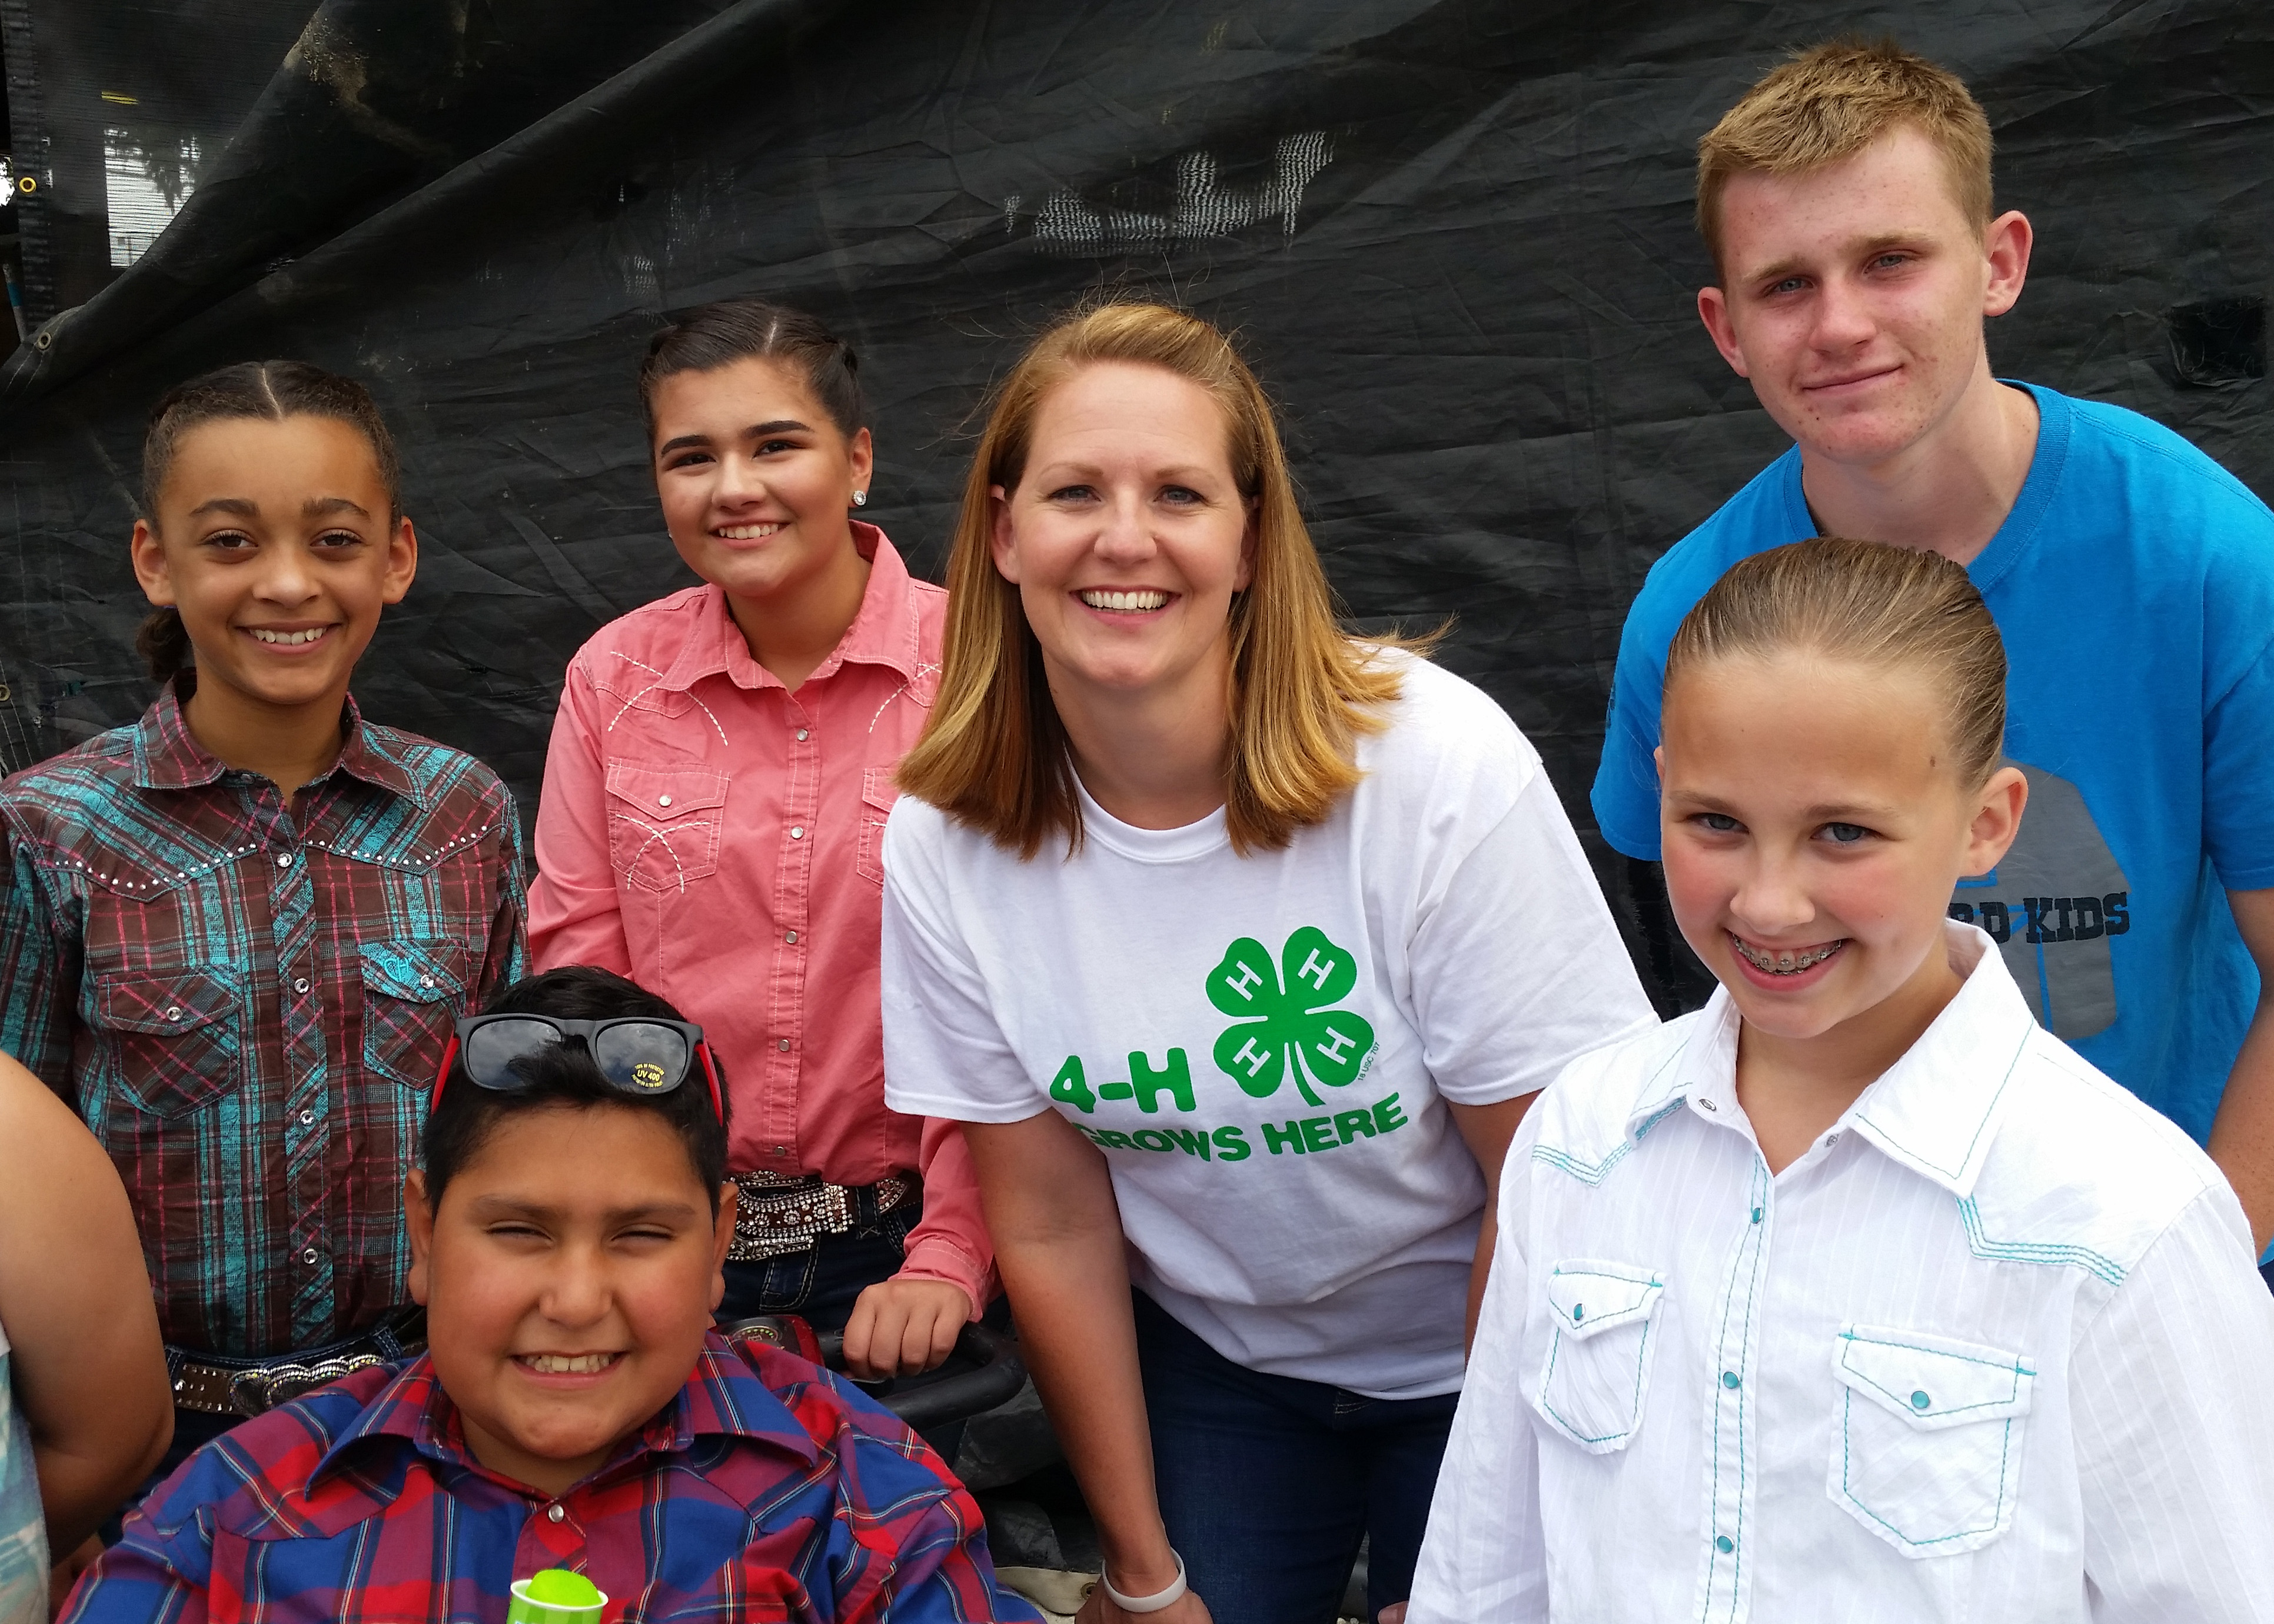 Natalie Stott and 4-H kids.